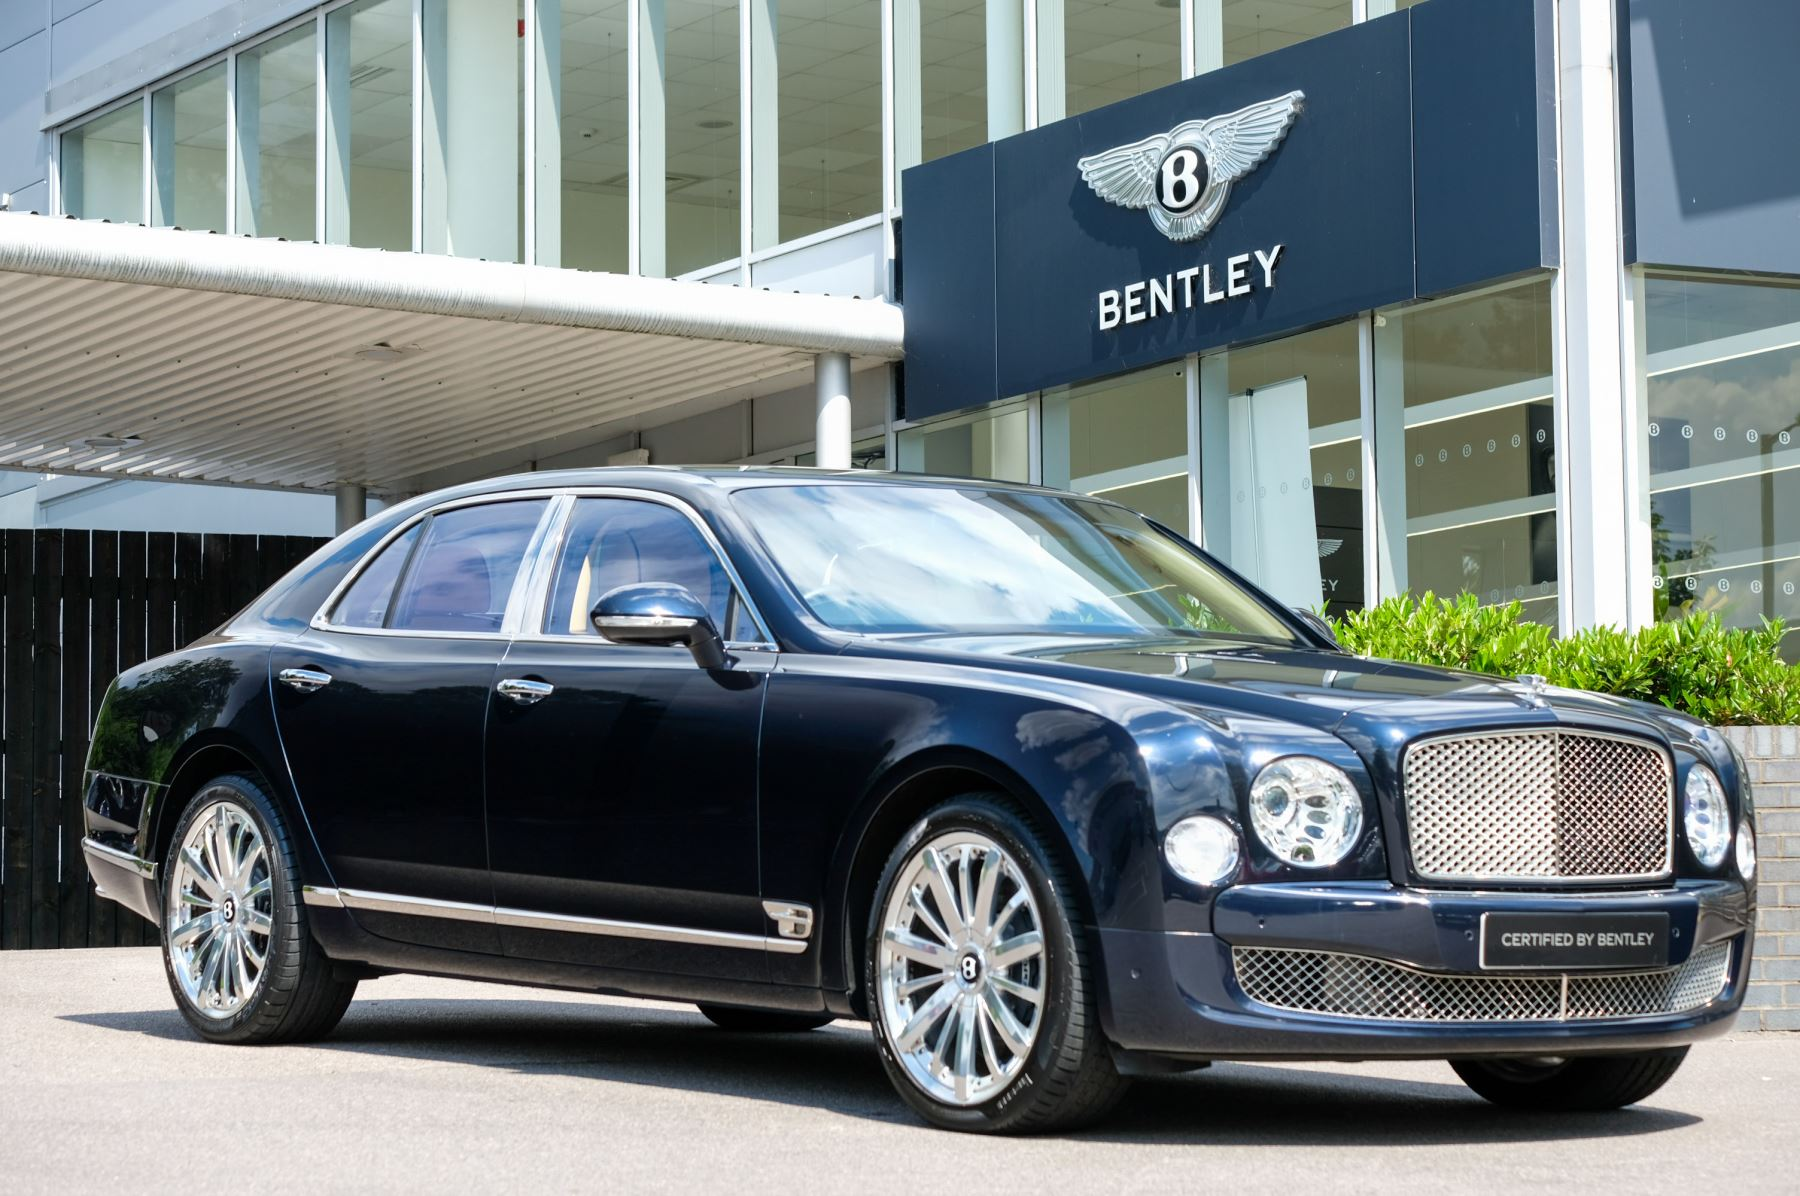 Bentley Mulsanne 6.8 V8 Mulliner Driving and Premier Specification Automatic 4 door Saloon